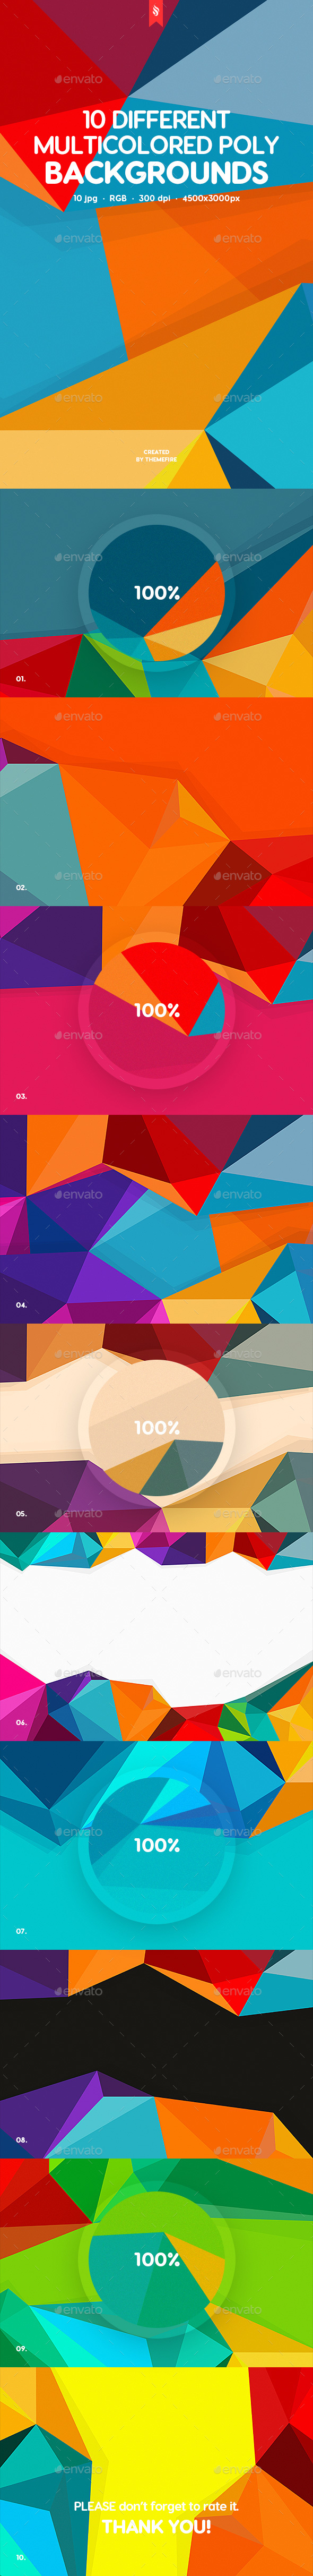 10 Different Multicolored Polygon Backgrounds - Abstract Backgrounds